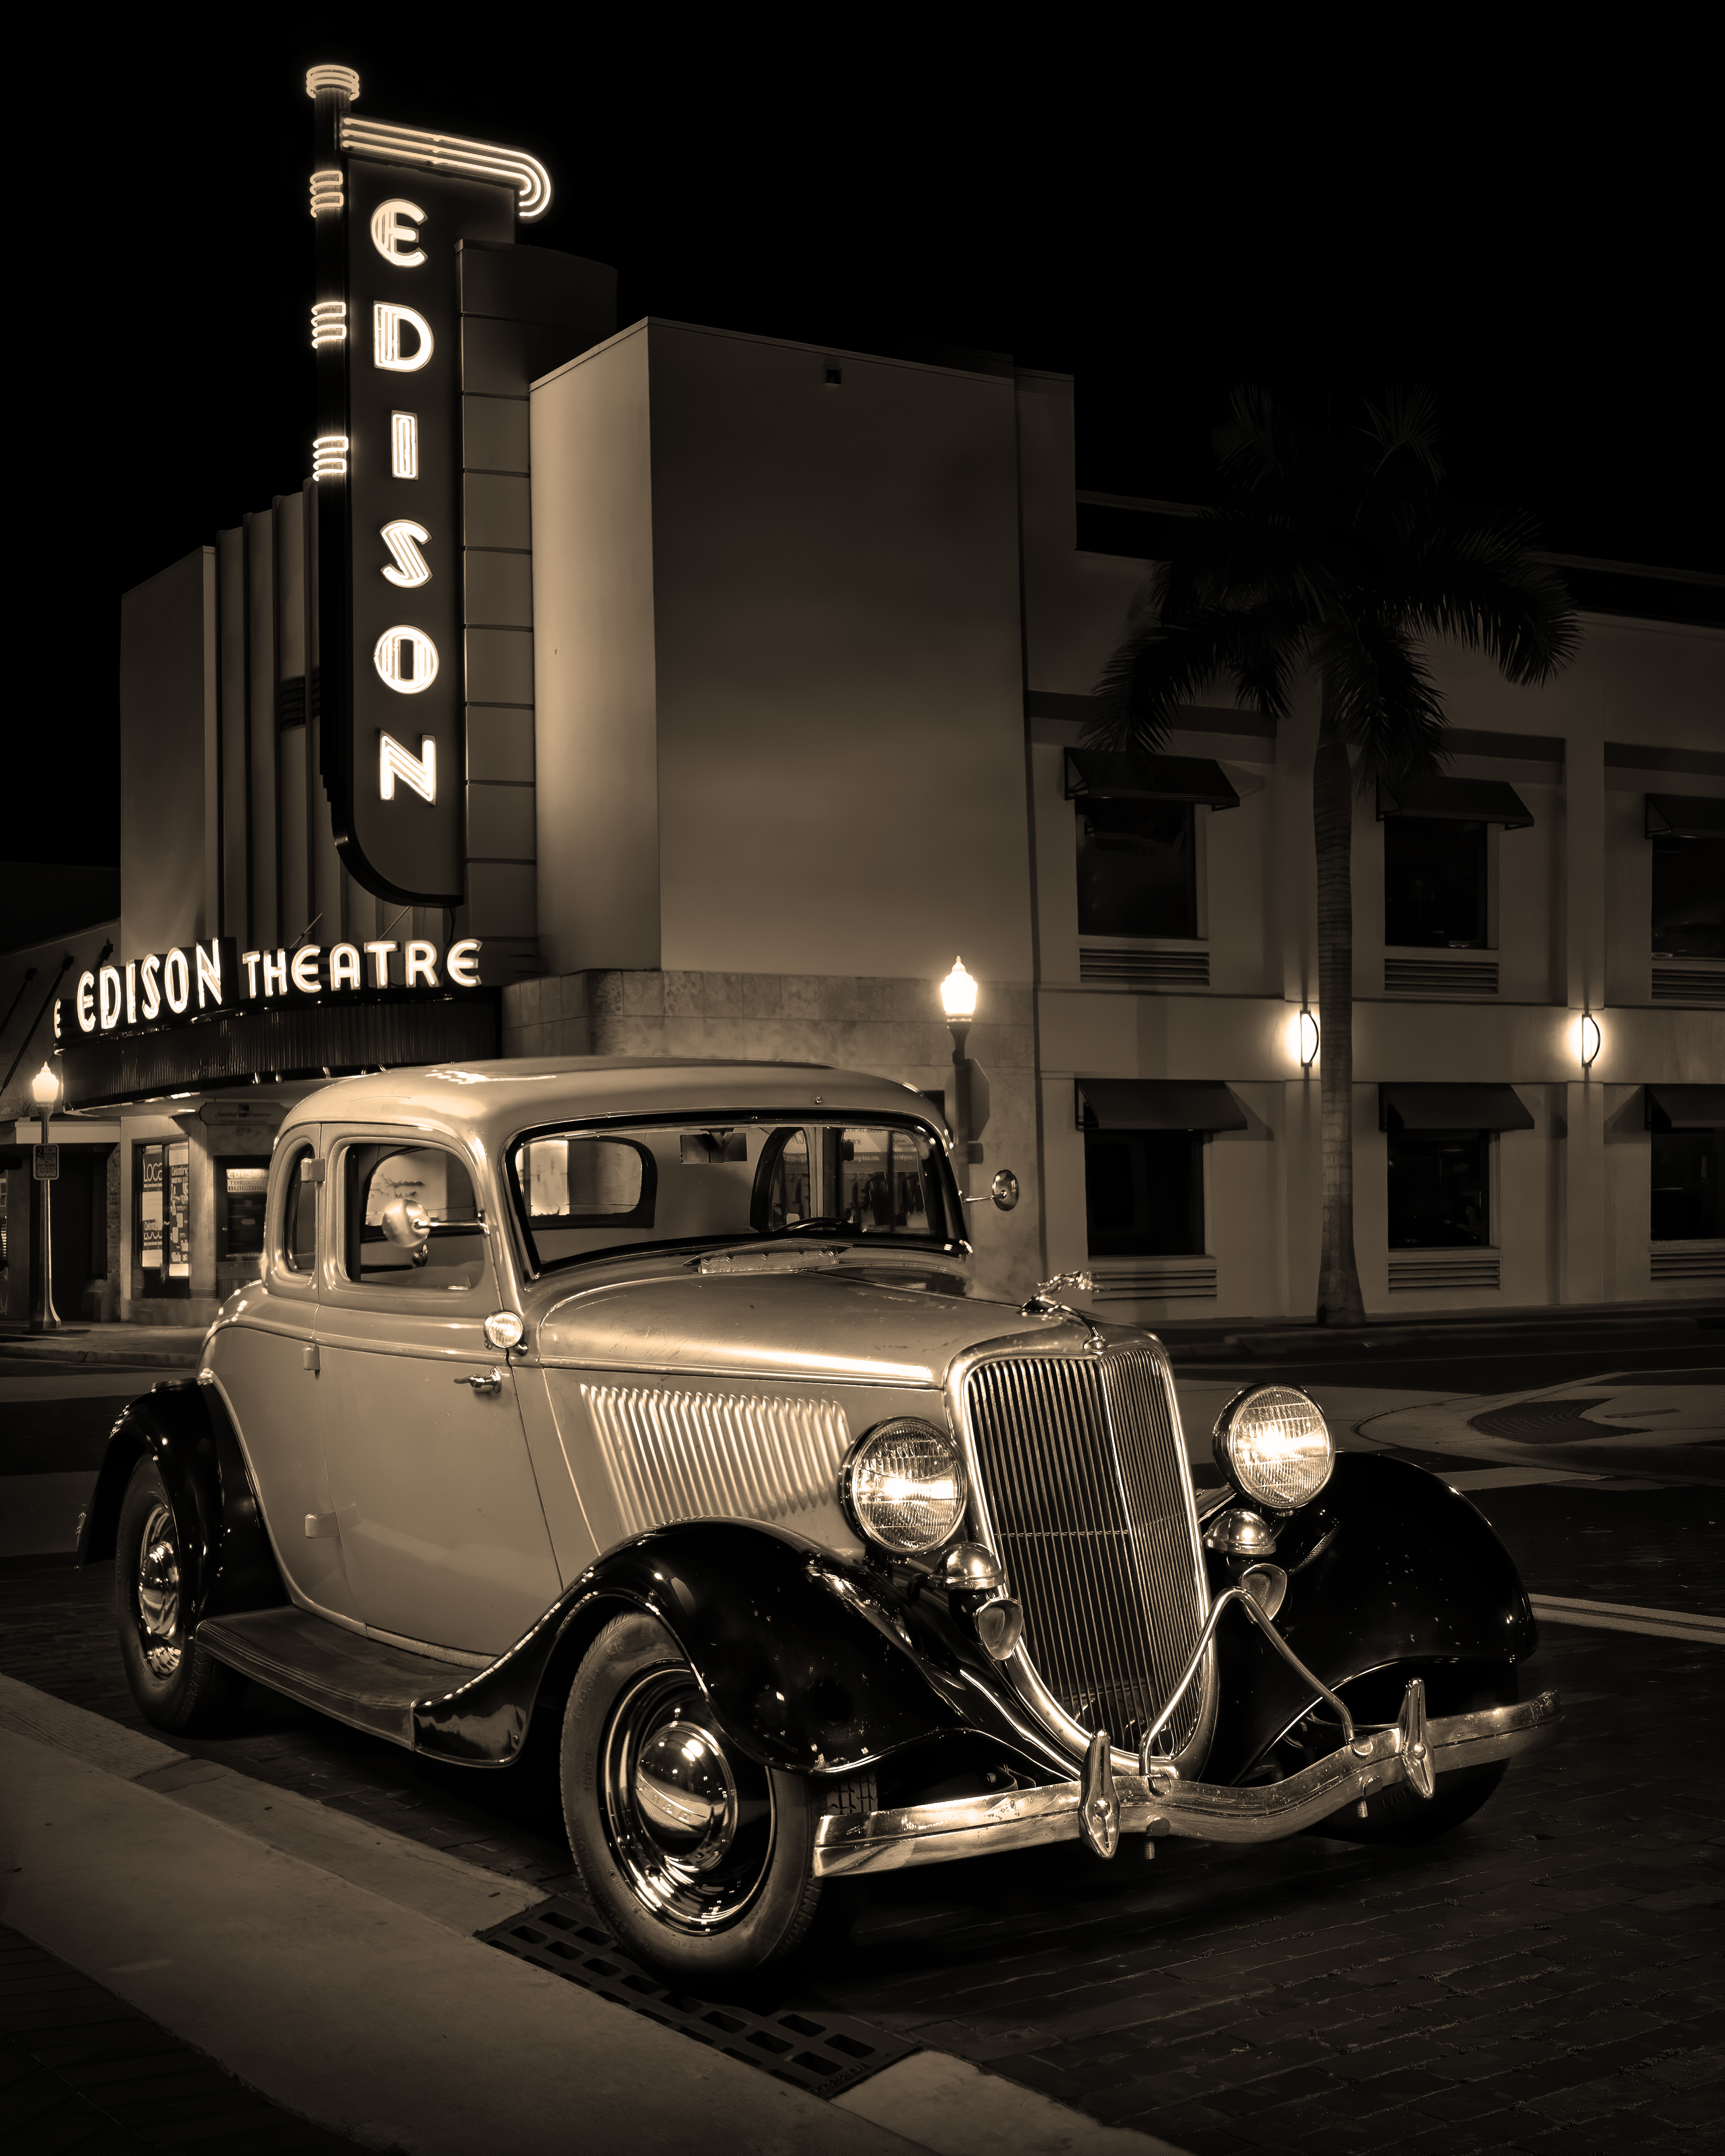 34Ford_050820_01sepia_8x10